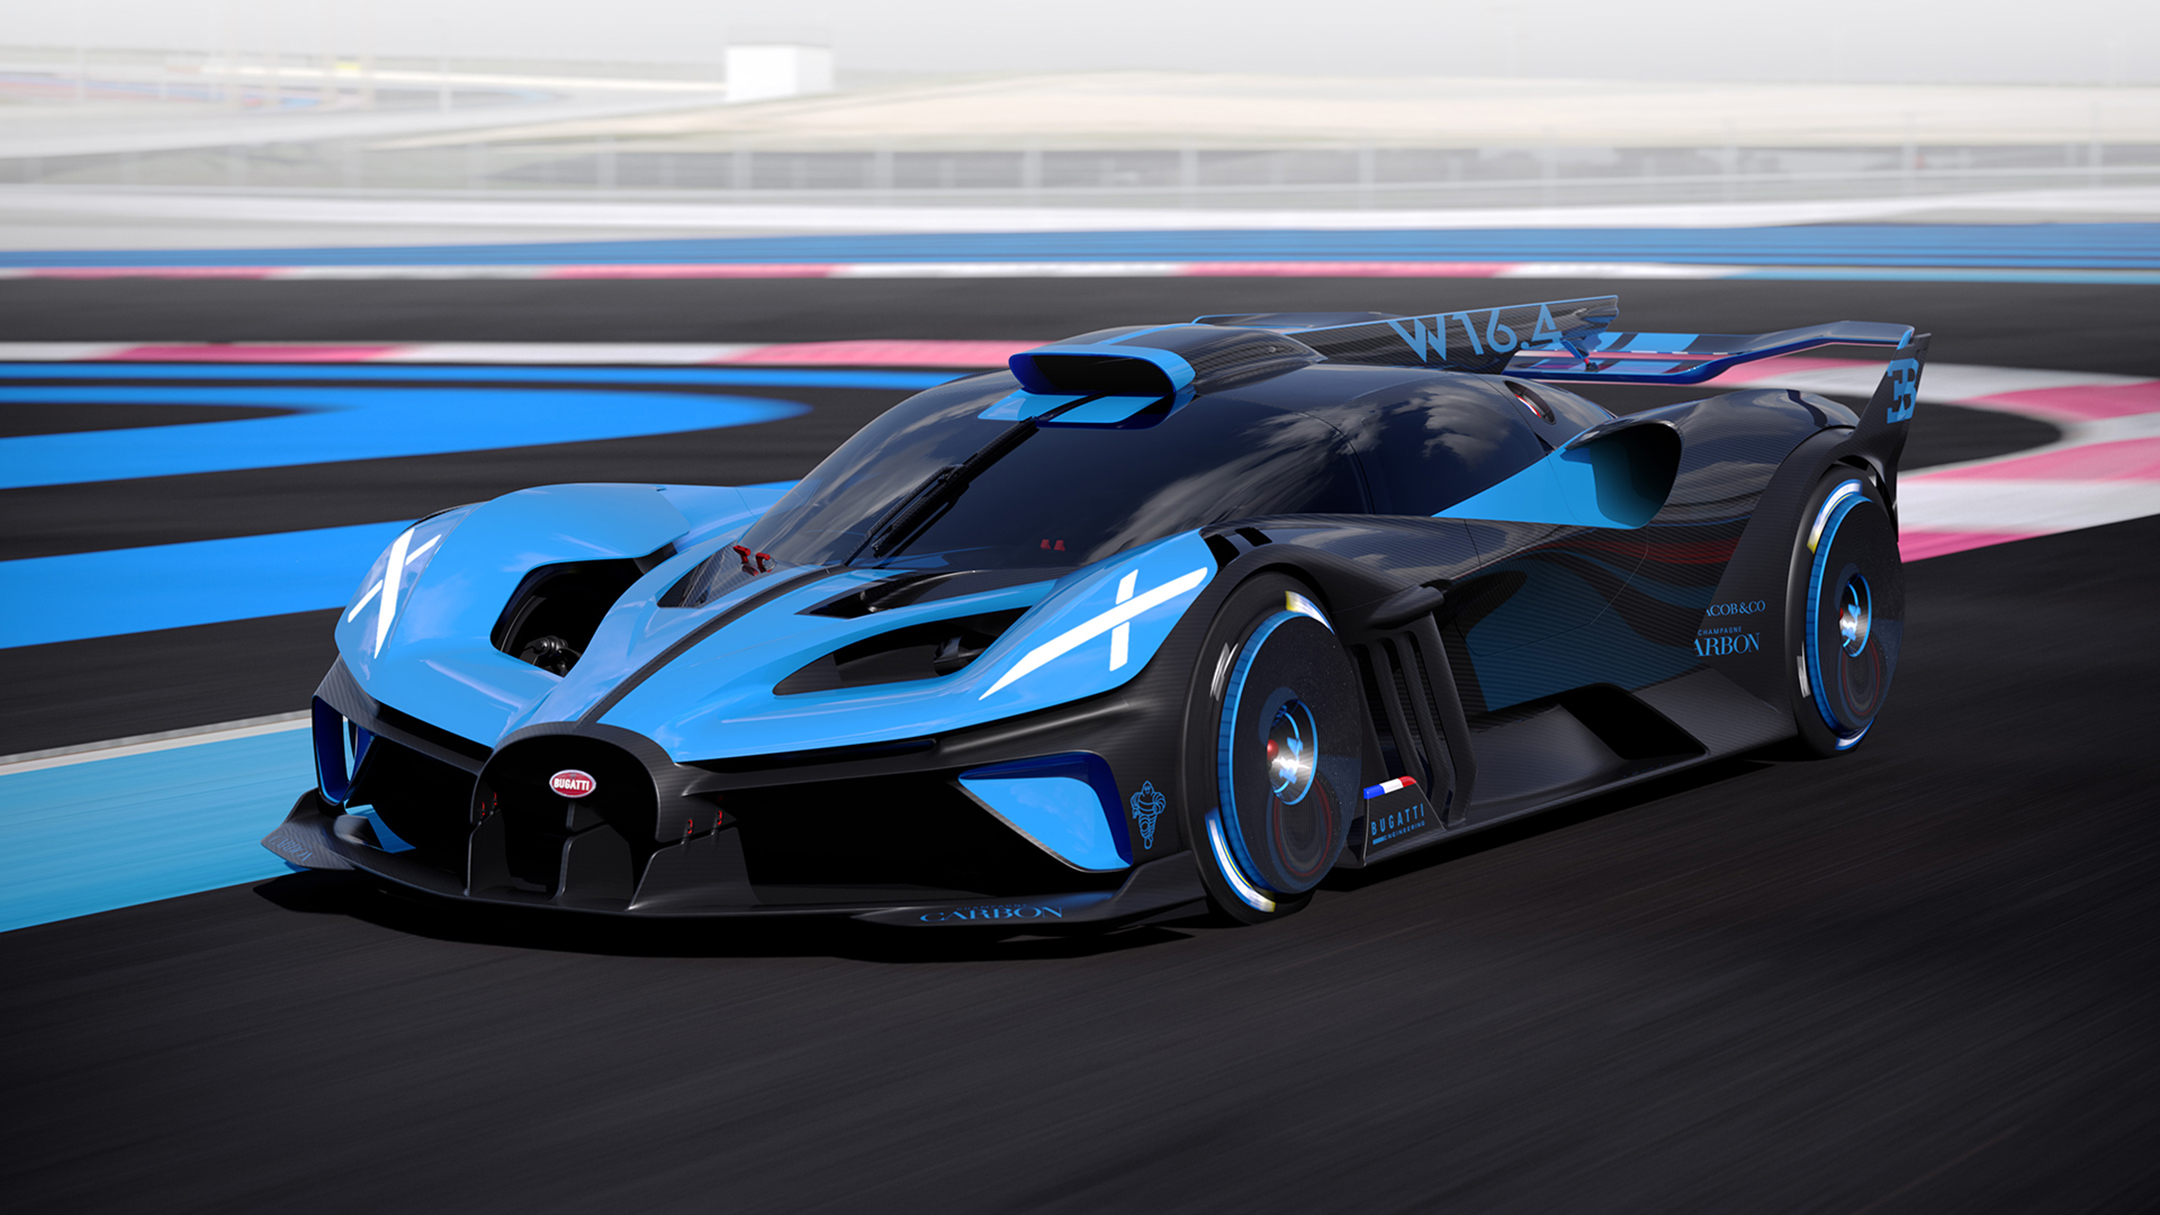 Bugatti Bolide - 2020 - front side-face / profil avant - on track / sur circuit